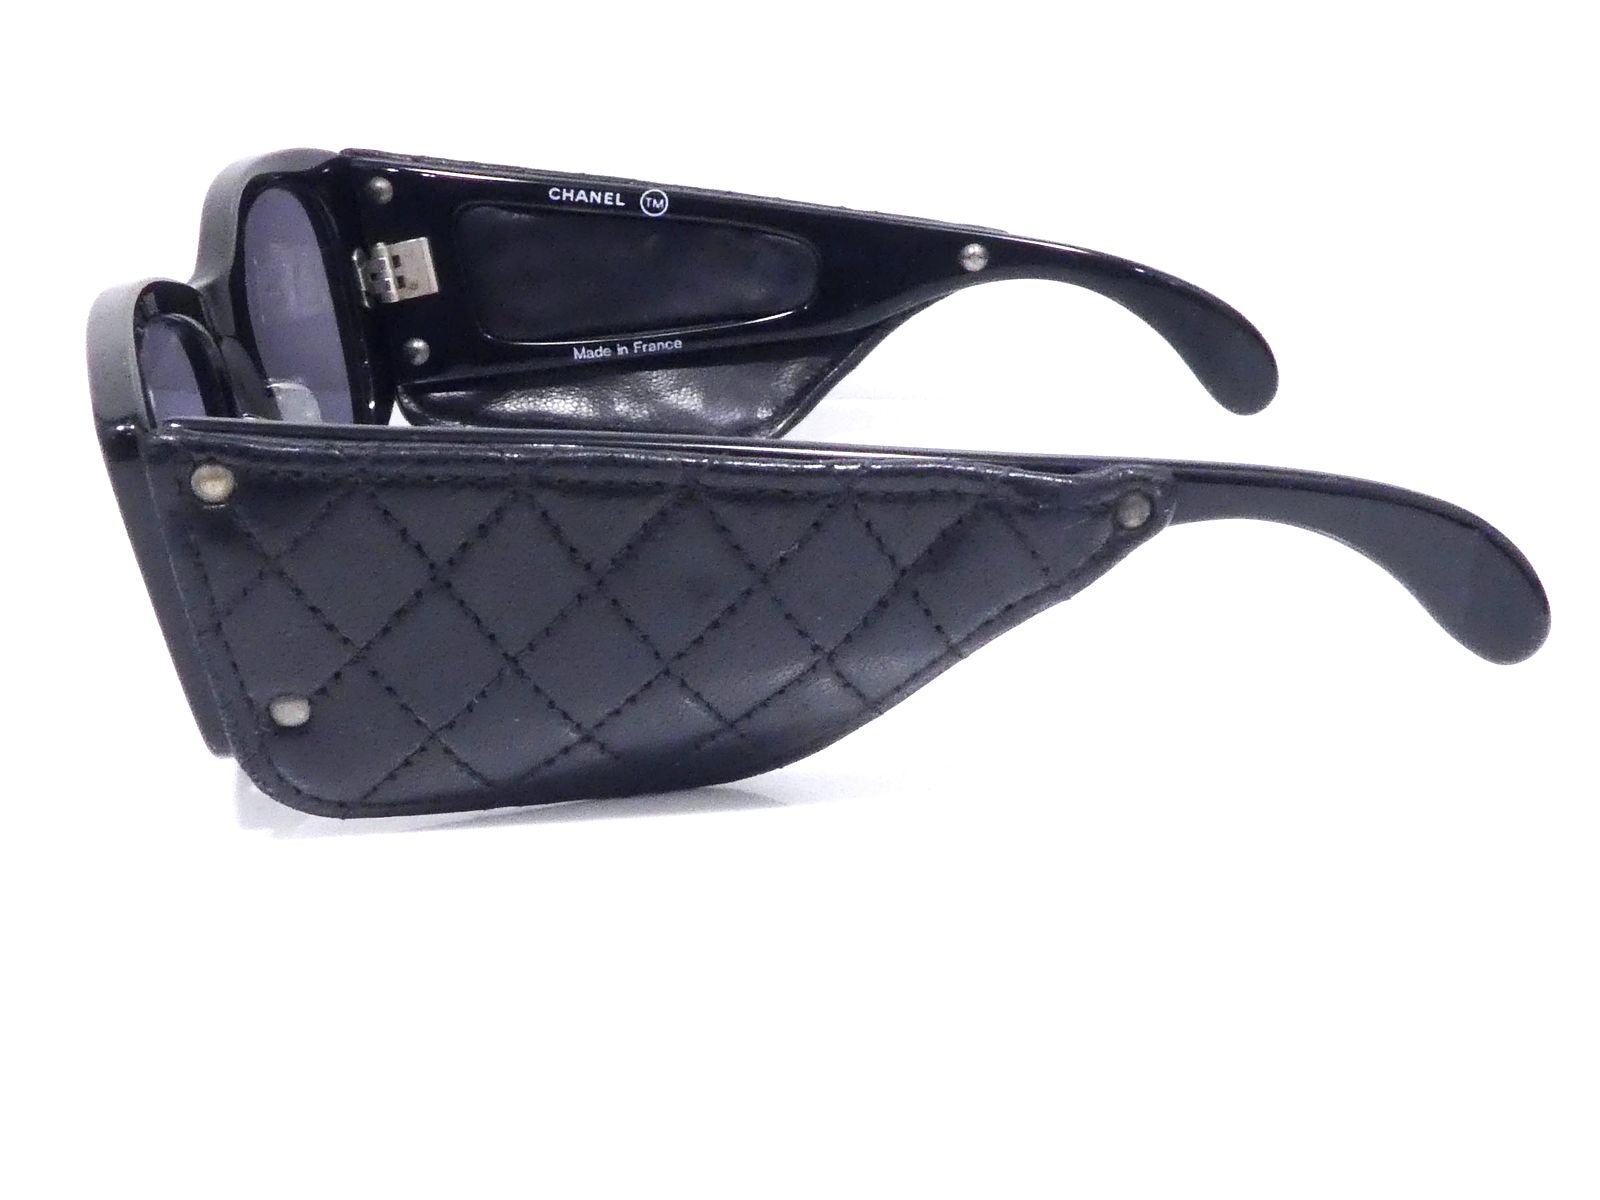 ca28752381 Authentic CHANEL Leather Plastic Sunglasses Eyewear Black Made in ...